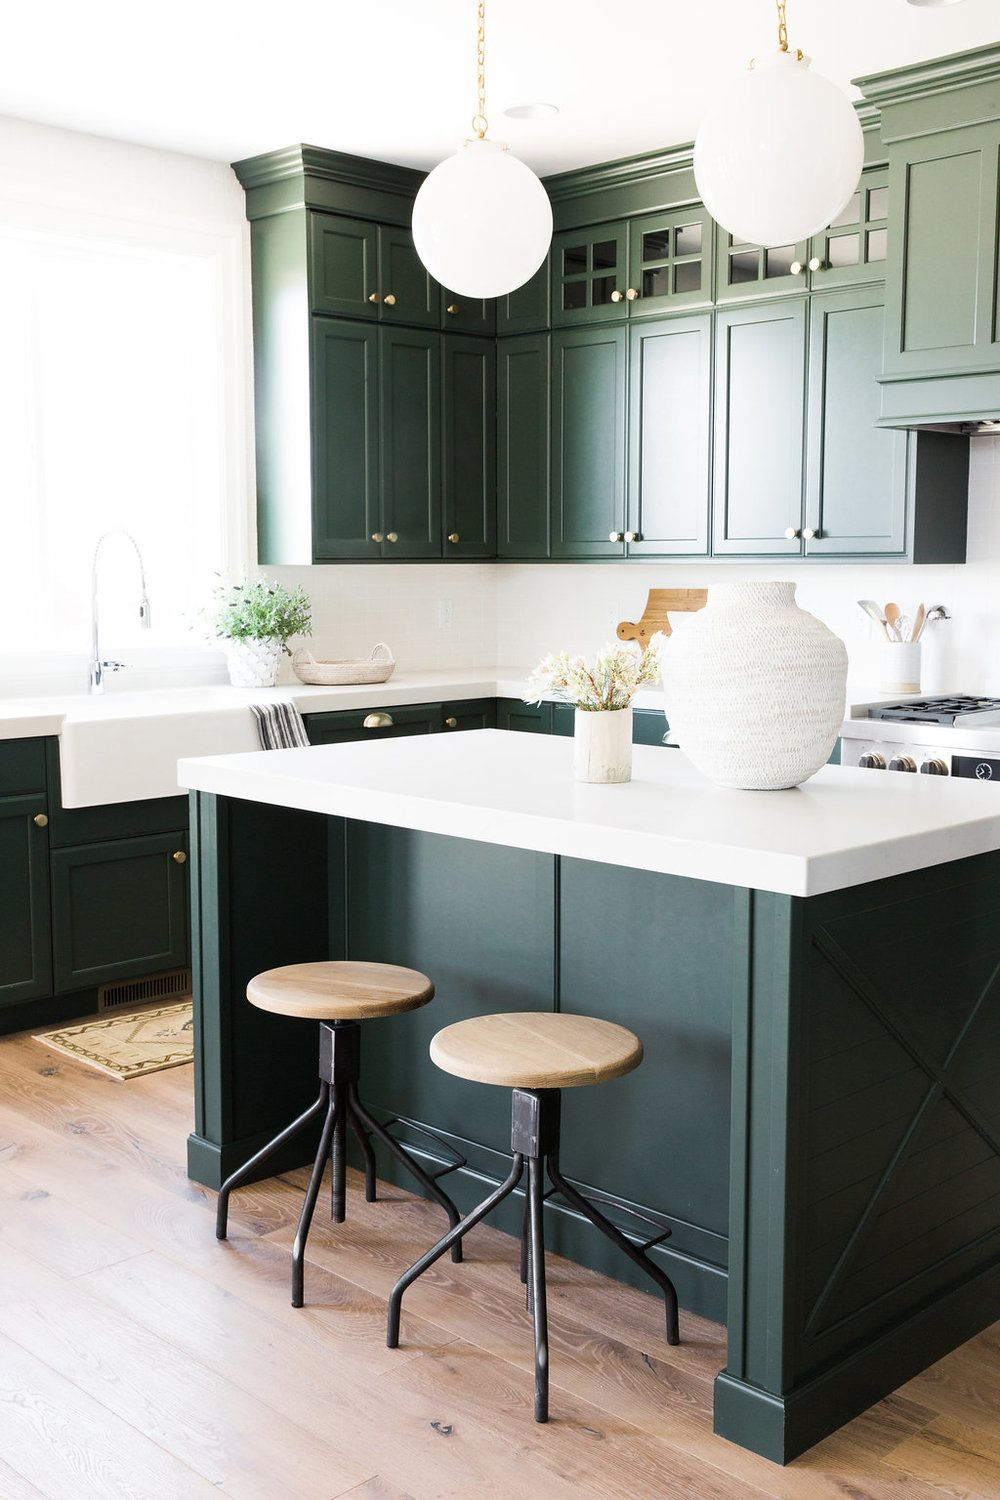 parade home reveal pt 1 green kitchen cabinets kitchen cabinet design kitchen design on kitchen ideas with dark cabinets id=35839